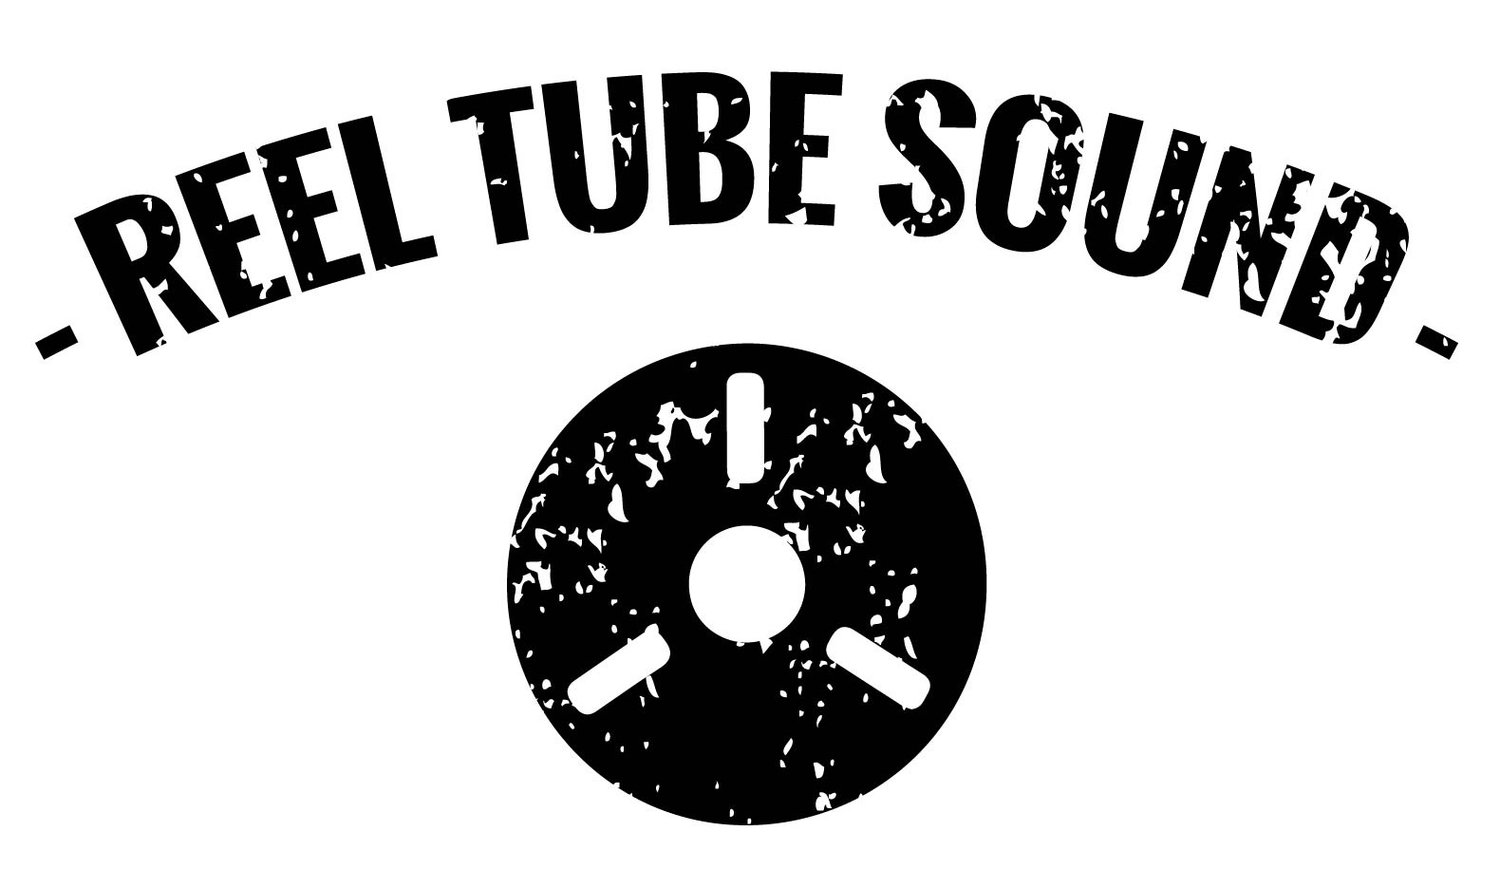 Reel Tube Sound